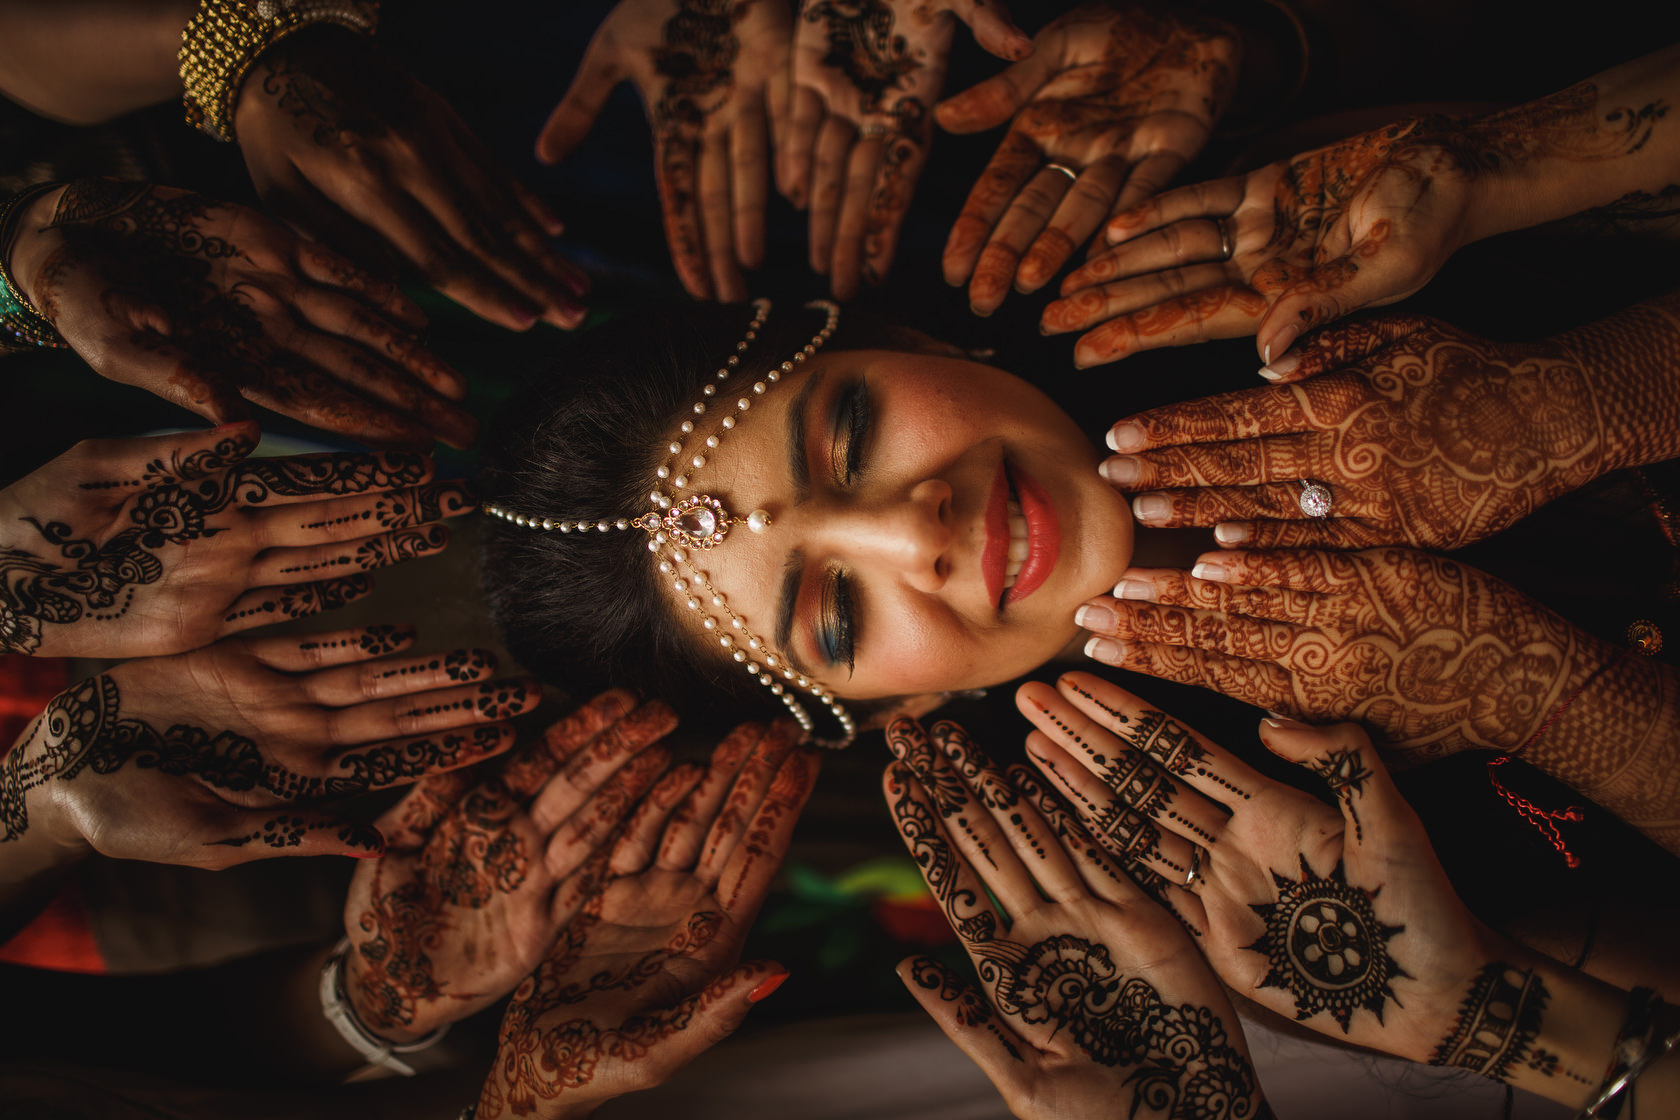 Amazing Creative Indian Wedding Photography by ARJ Photography